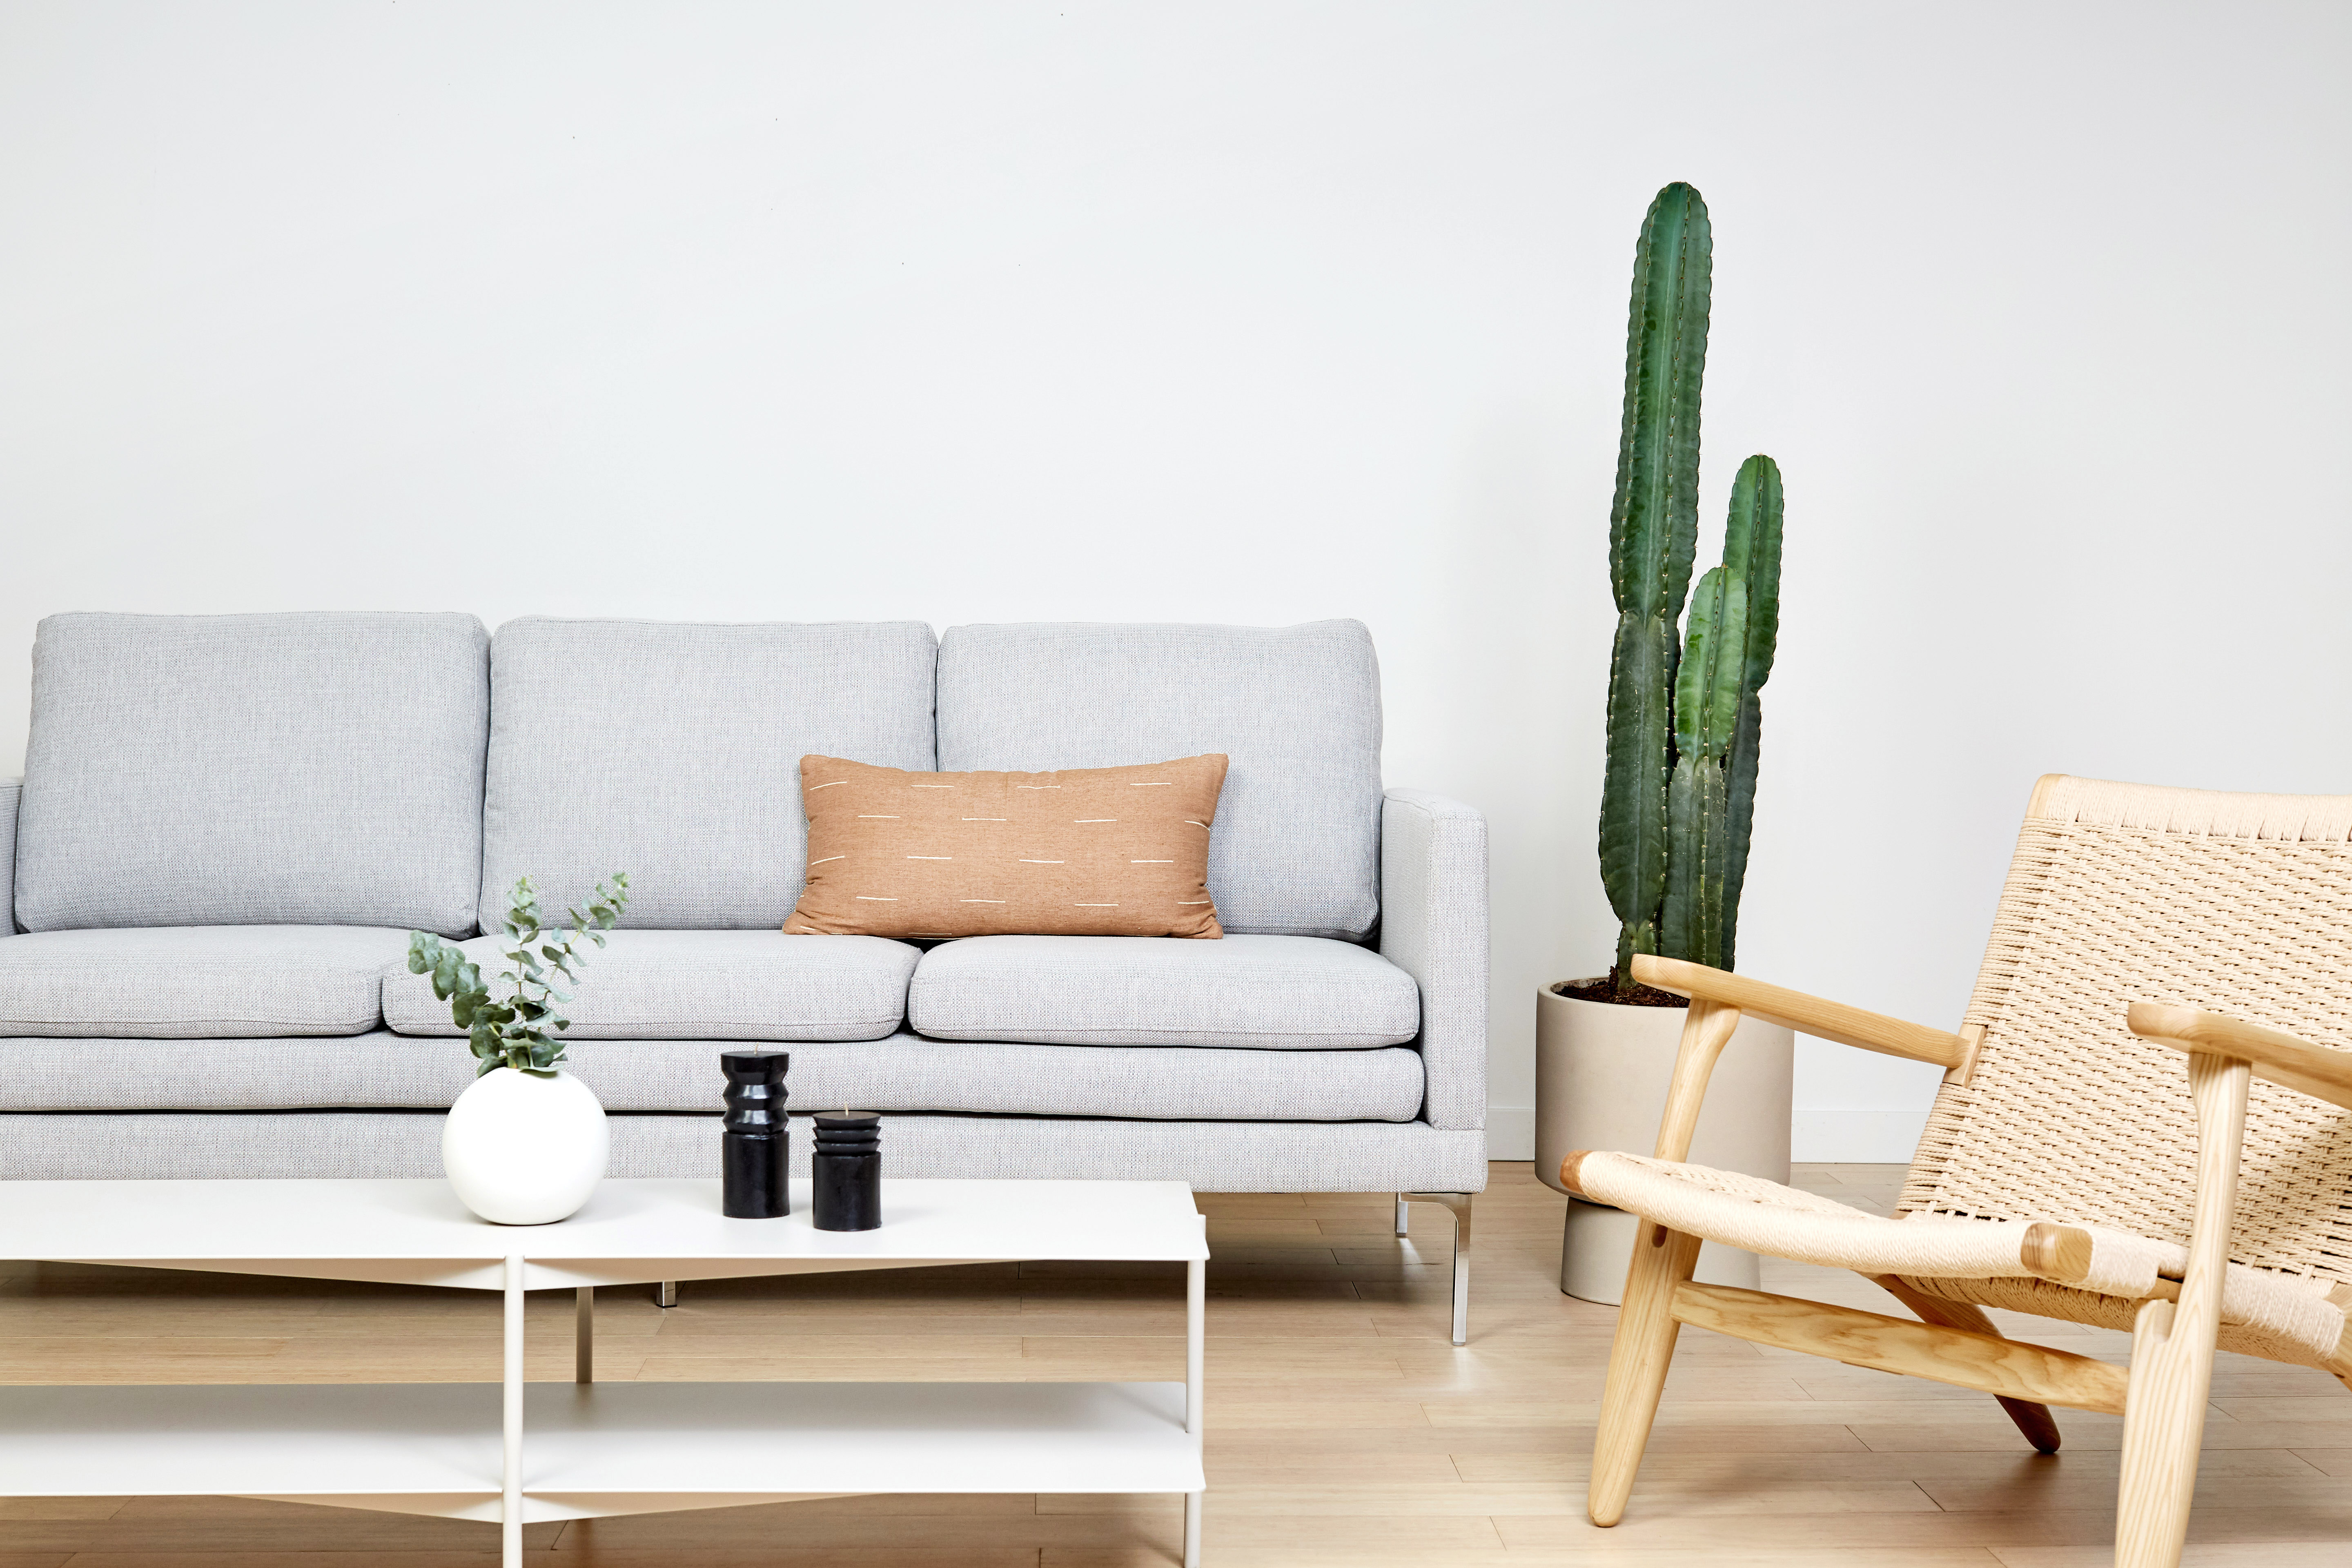 Why Is Renting Furniture a Trendy Thing Now?